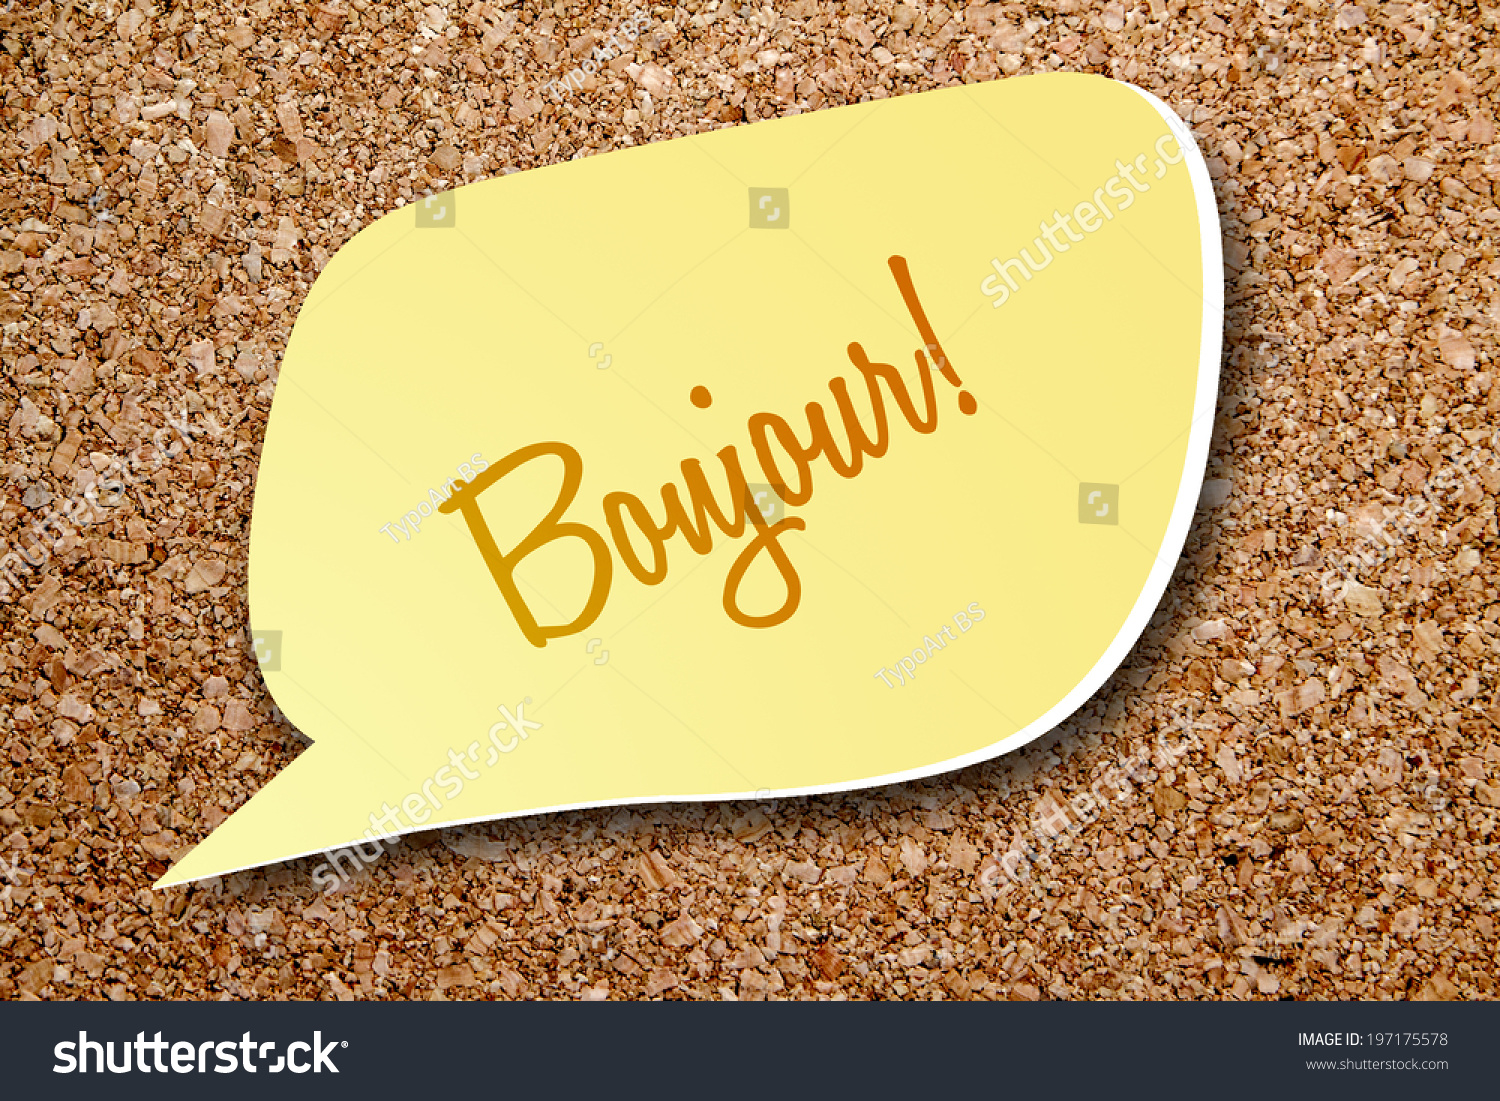 Say Good Morning French Stock Photo Edit Now 197175578 Shutterstock